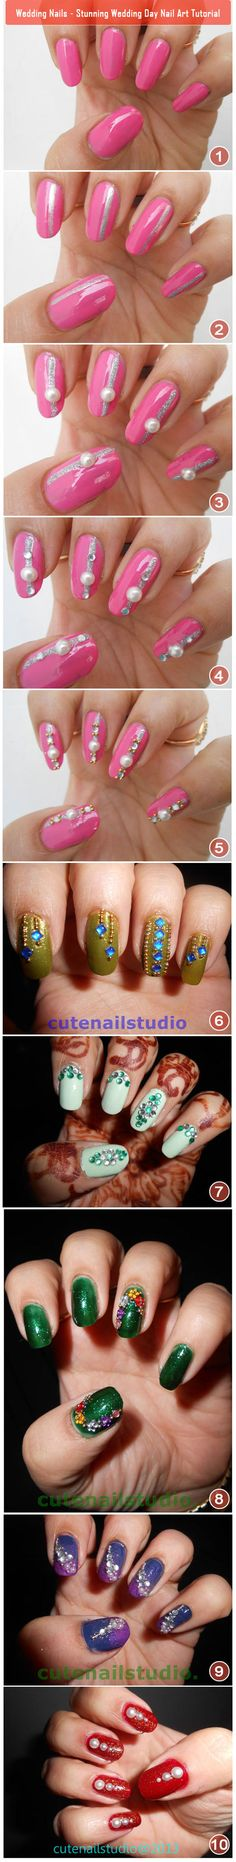 Wedding Nails – Stunning Wedding Day Nail Art Tutorial